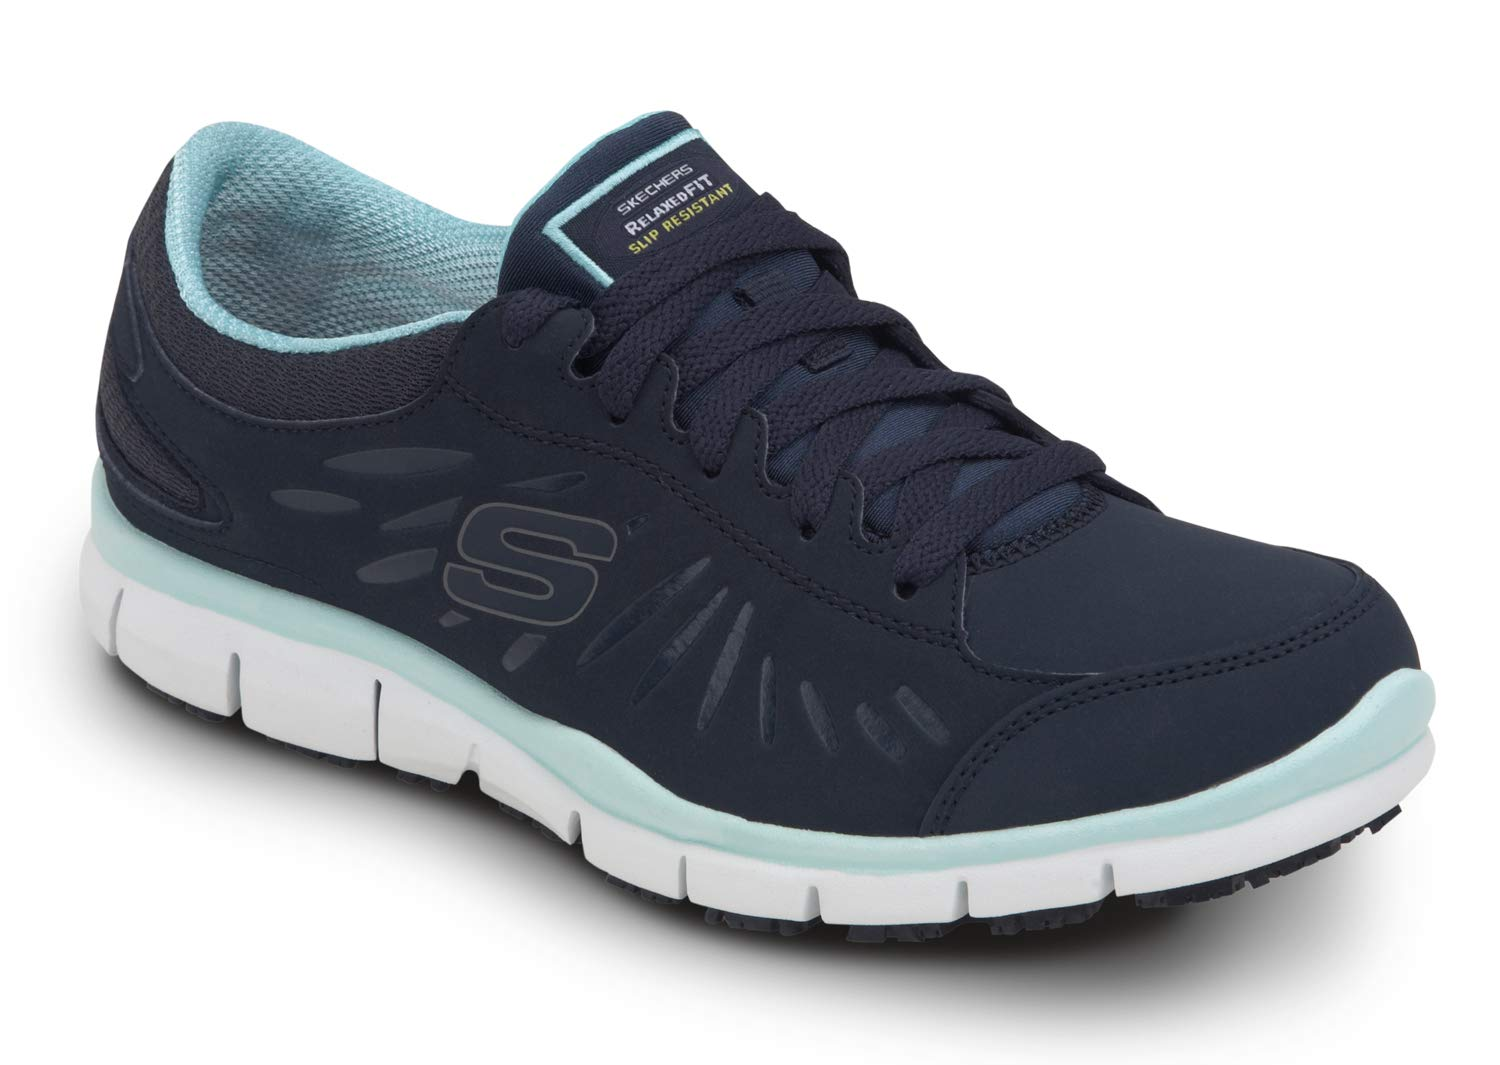 Skechers Work Stacey - Women's Soft Toe Slip Resistant Low Athletic